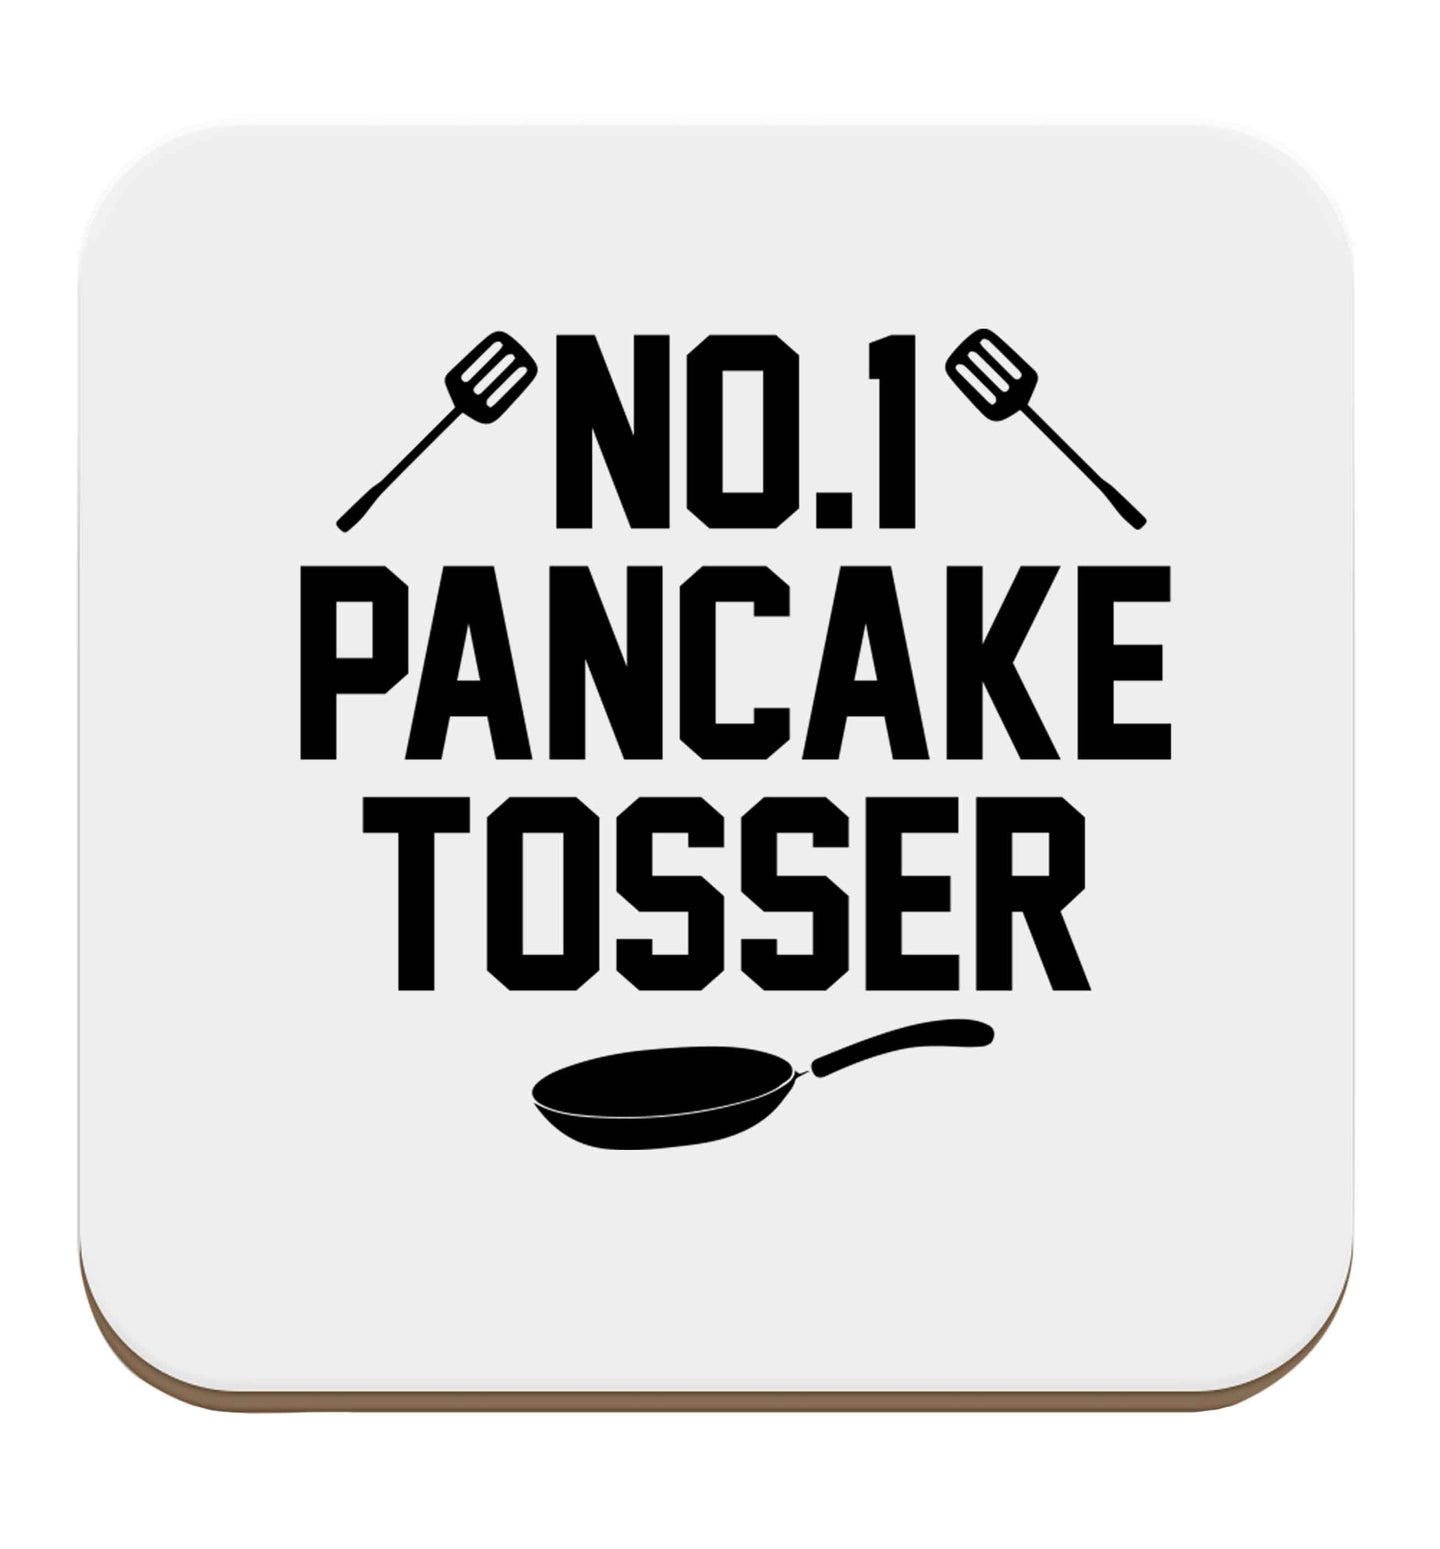 No.1 Pancake tosser set of four coasters